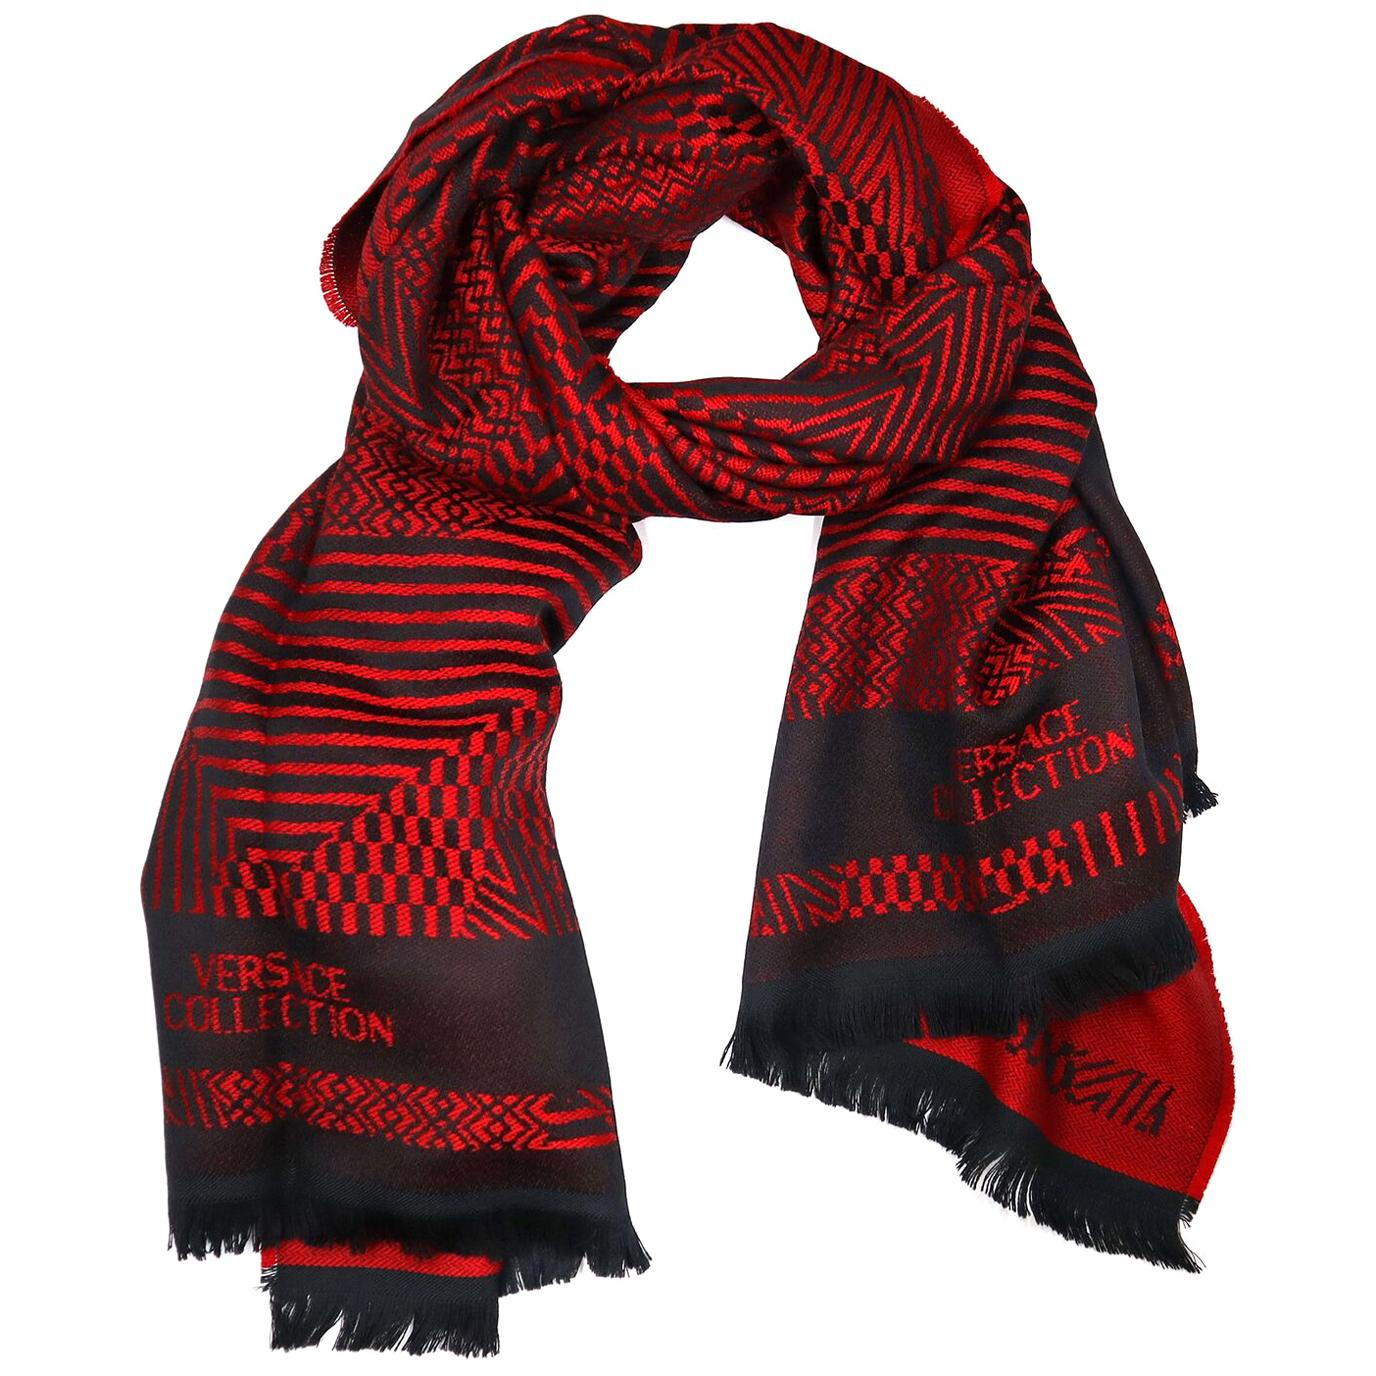 Versace Collection Black & Red Mens Scarf IST7R02IT02853I4081